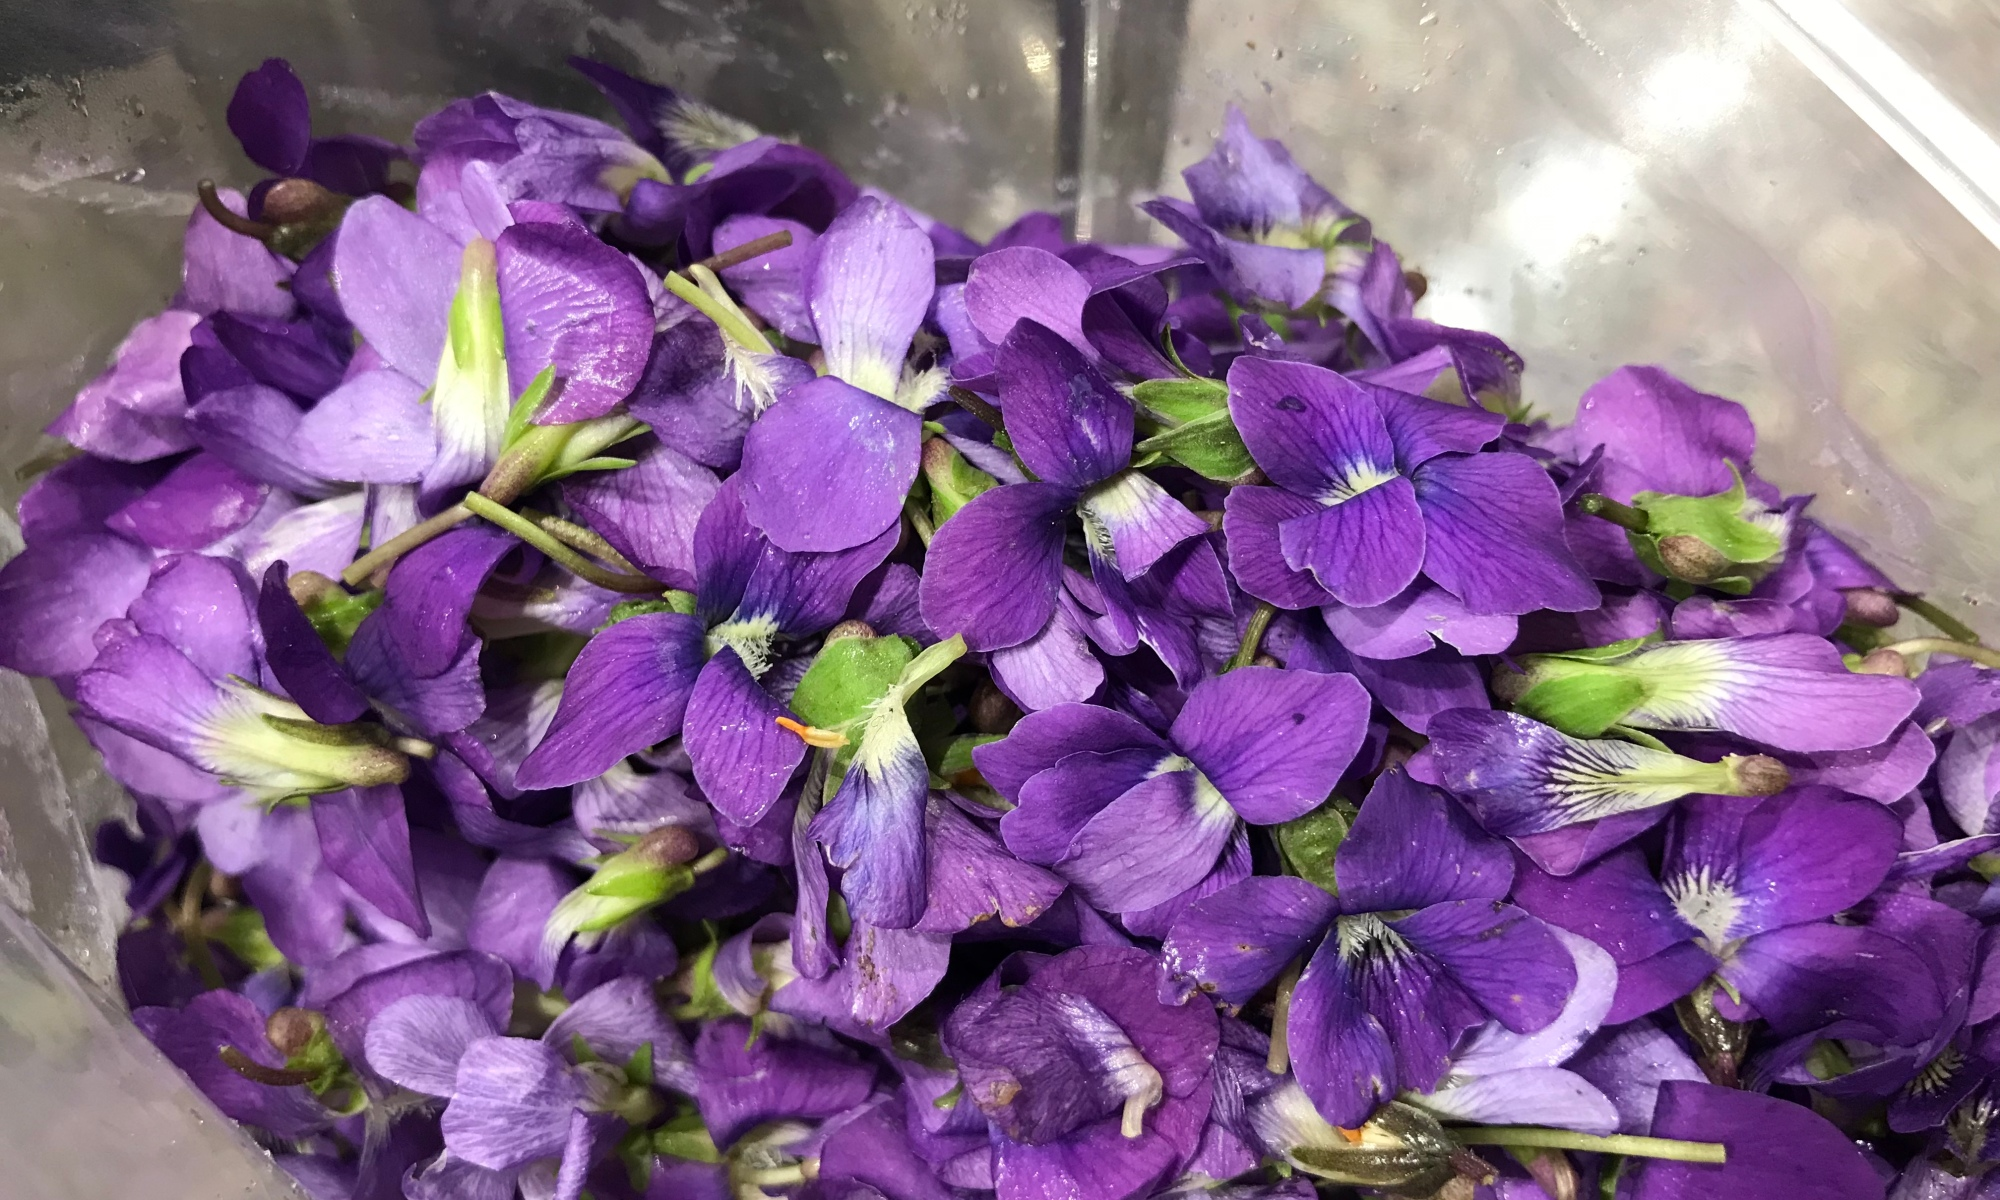 a plastic bag that is about half full of freshly picked violet flowers